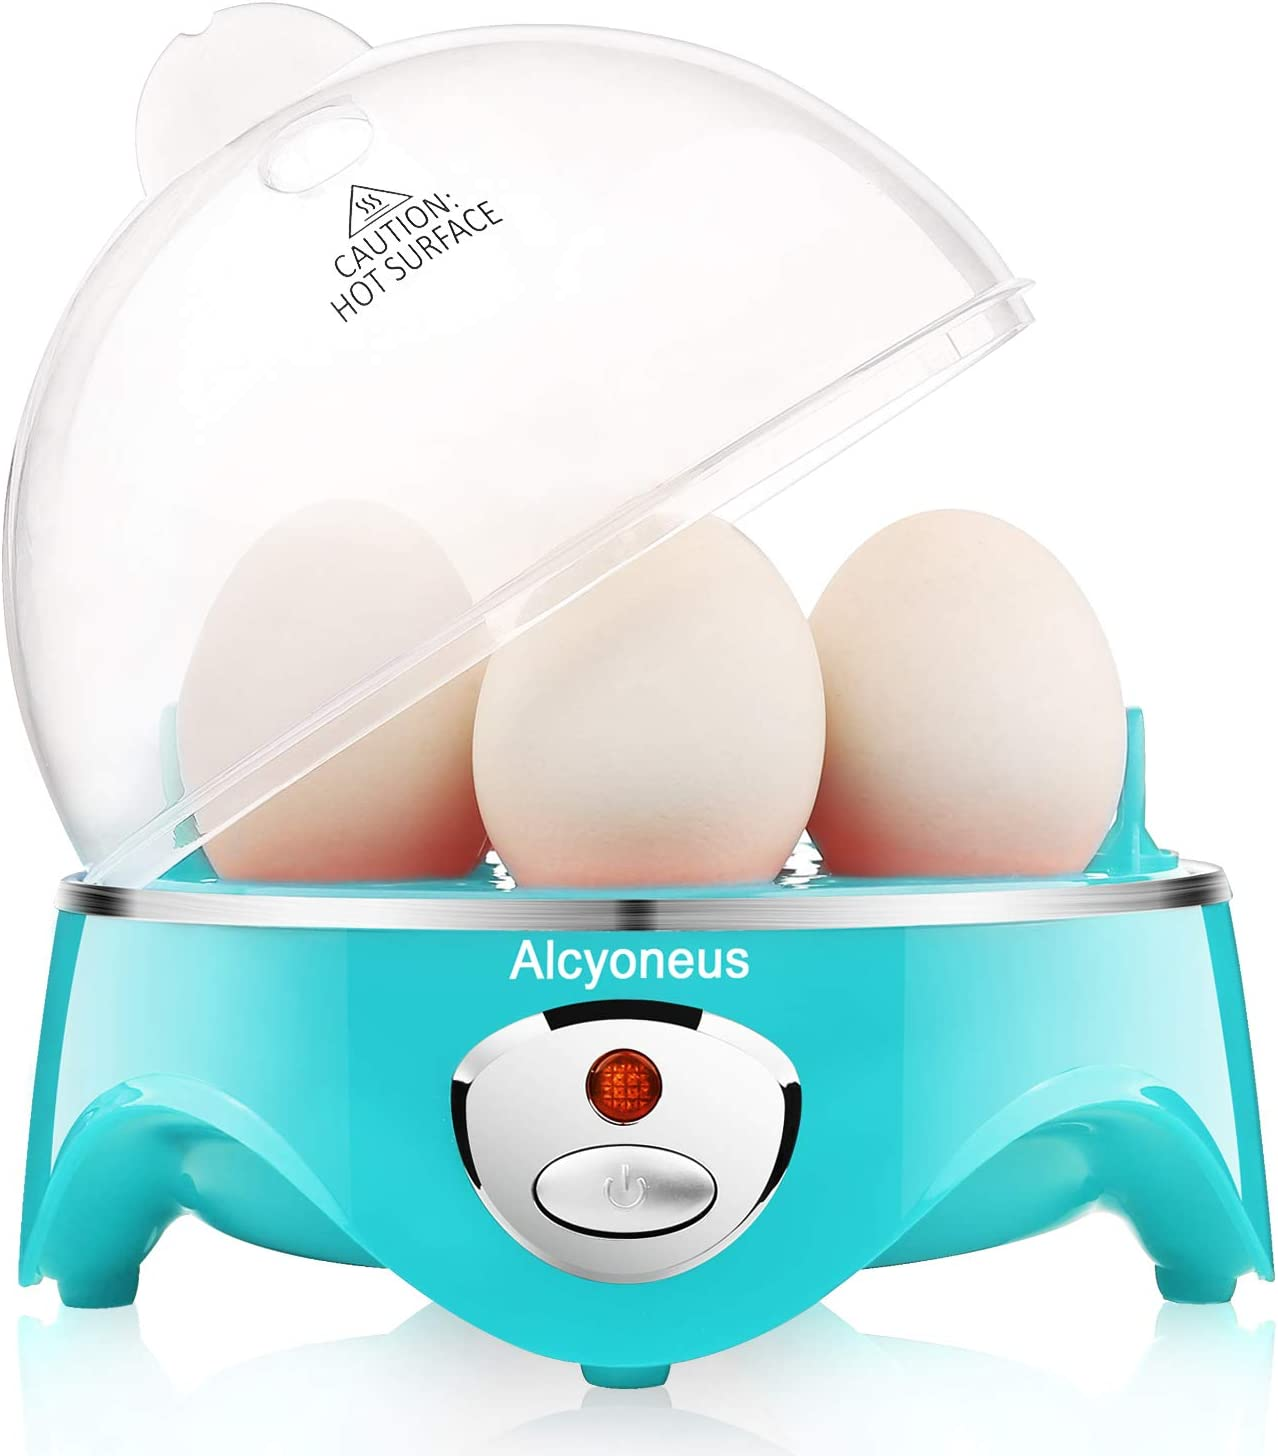 Alcyoneus Egg Cooker, Egg Boiler Electric, Hard Boiled Egg Maker with Auto Shut Off, Noise-Free & 7-Capacity, Suitable for Poached Egg, Scrambled Eggs, Omelets - Cyan (5 BPA-free/ETL Listed/FDA Compliant)